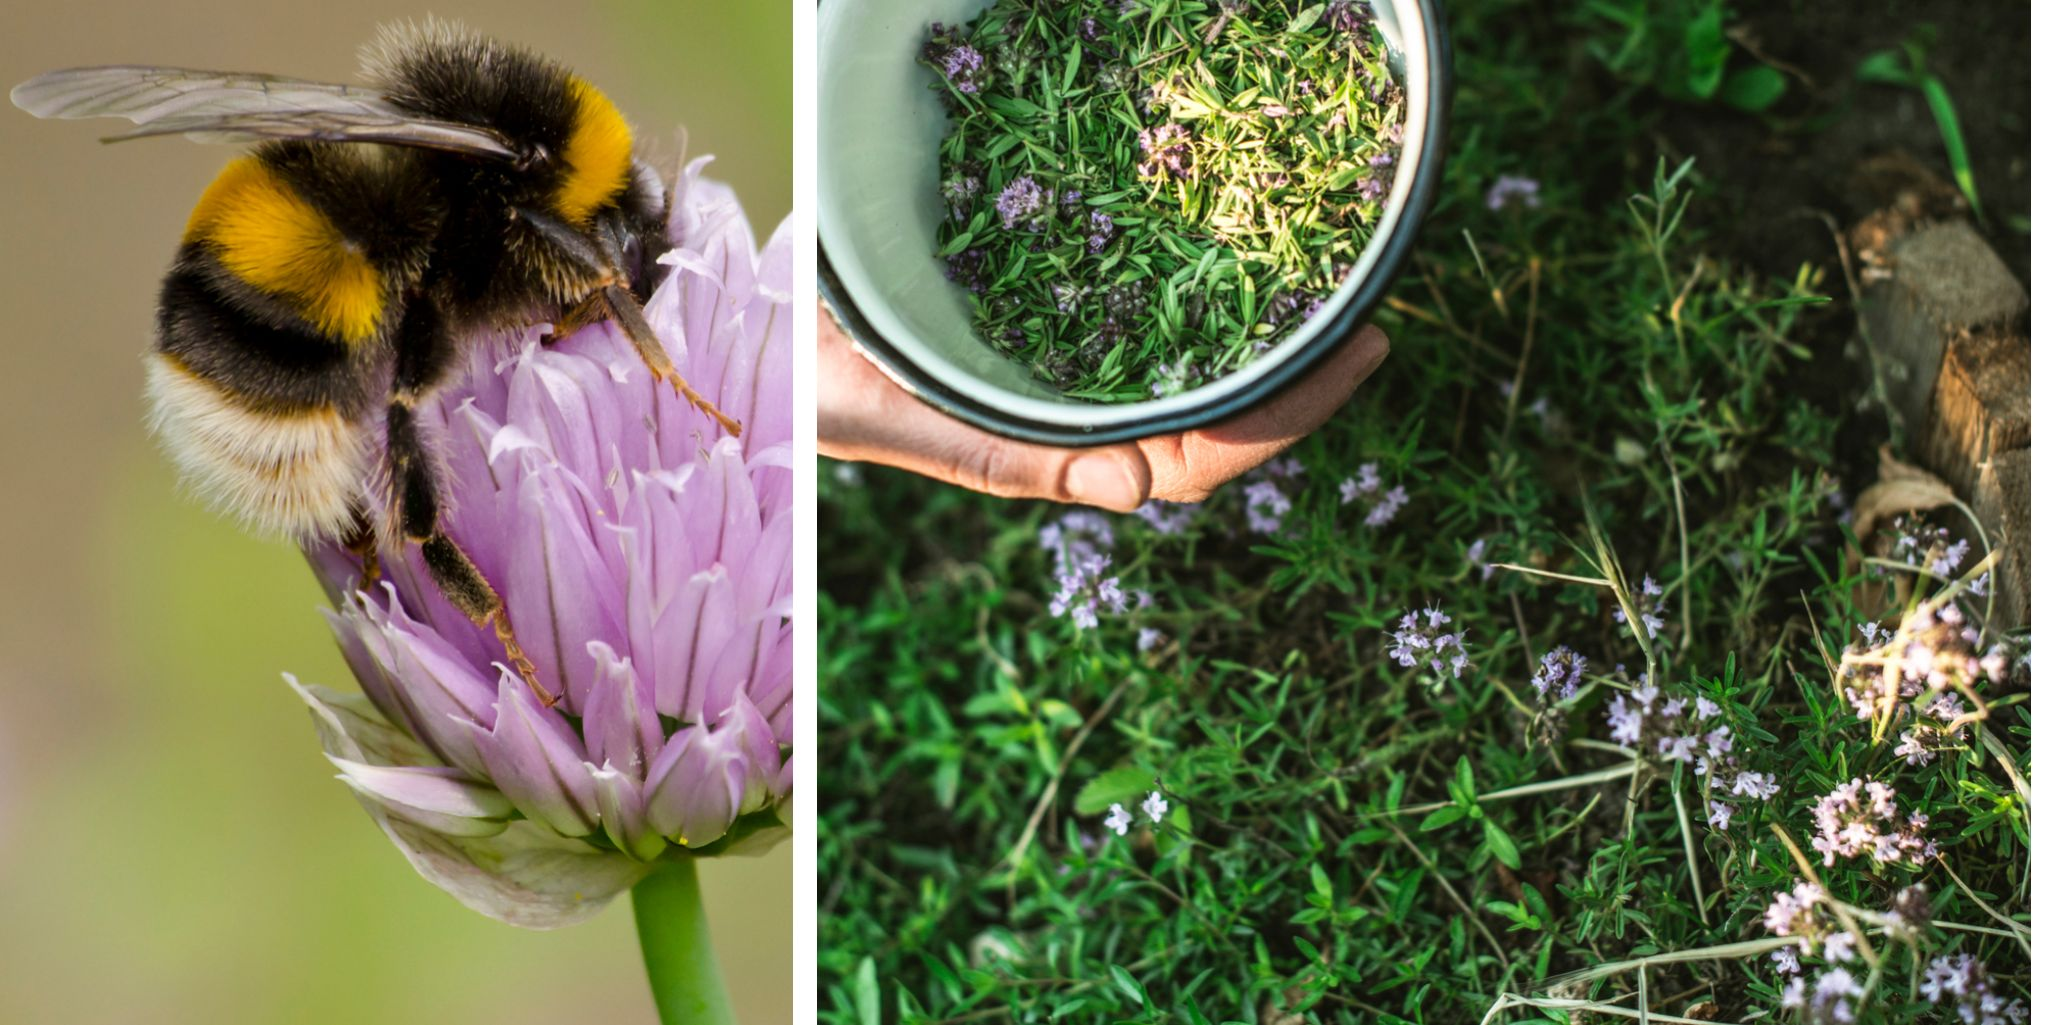 10 easy-to-grow herbs that bees will love – and it's great for your cooking too